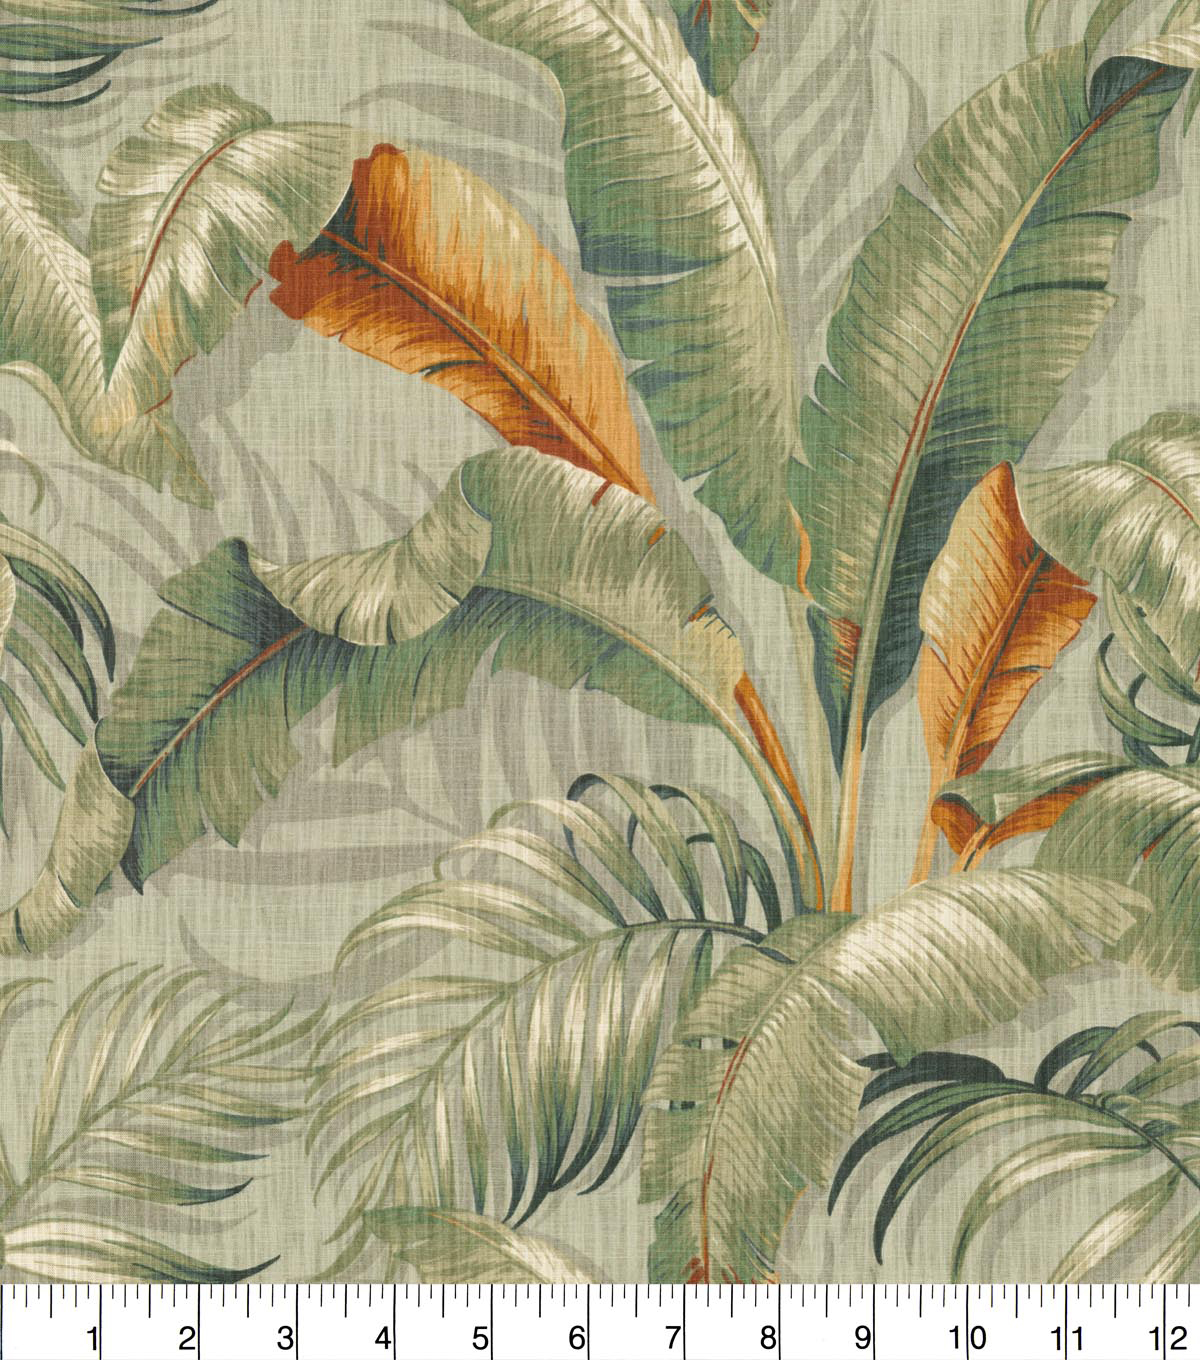 Home Decor 8\u0022x8\u0022 Fabric Swatch-Tommy Bahama Palmier Nutmeg